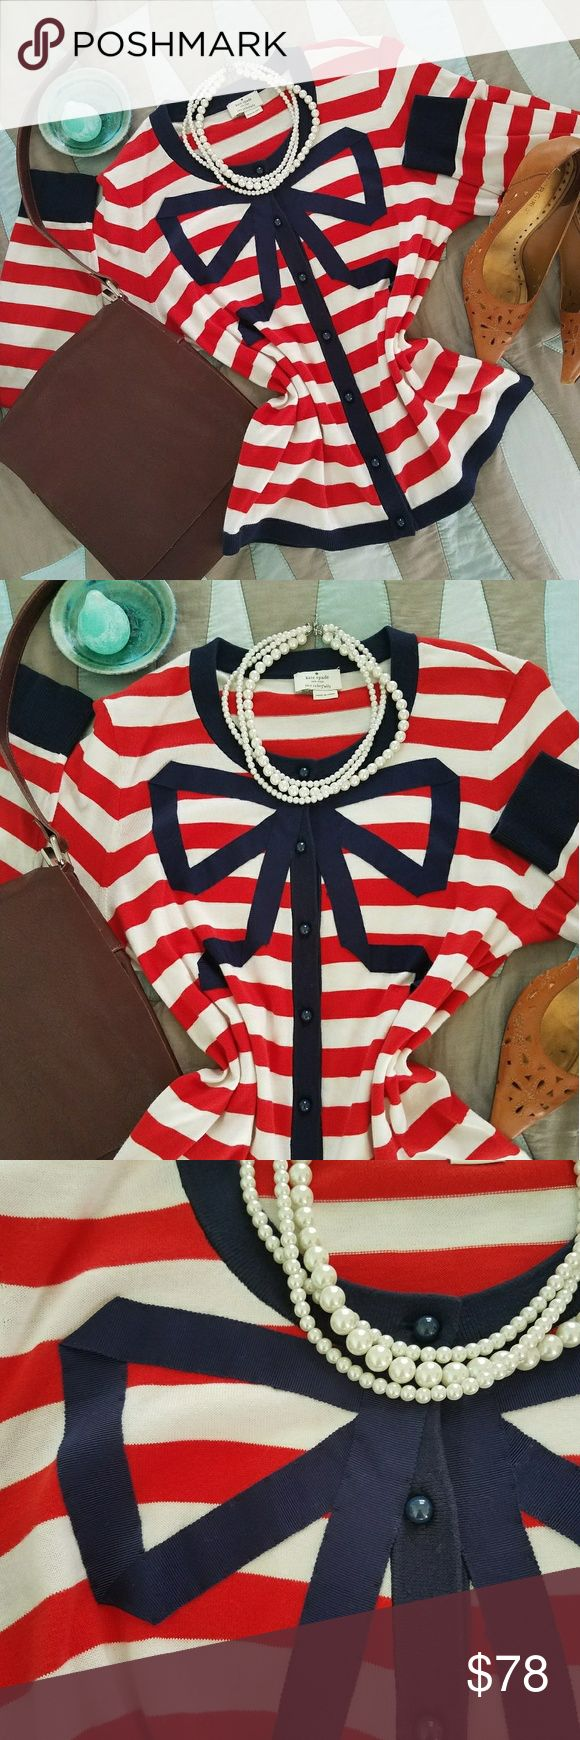 Kate Spade nautical ribbon bow striped cardigan Hard to find Kate Spade New York striped nautical cardigan, bow in front is made of ribbon, so pretty!. Ka cardigan is Button Up Style and is in size large, used in excellent condition, very soft. 100% cotton. Please see measurements in photos. Sweater is classic nautical colors, Navy, white, and red. kate spade Sweaters Cardigans